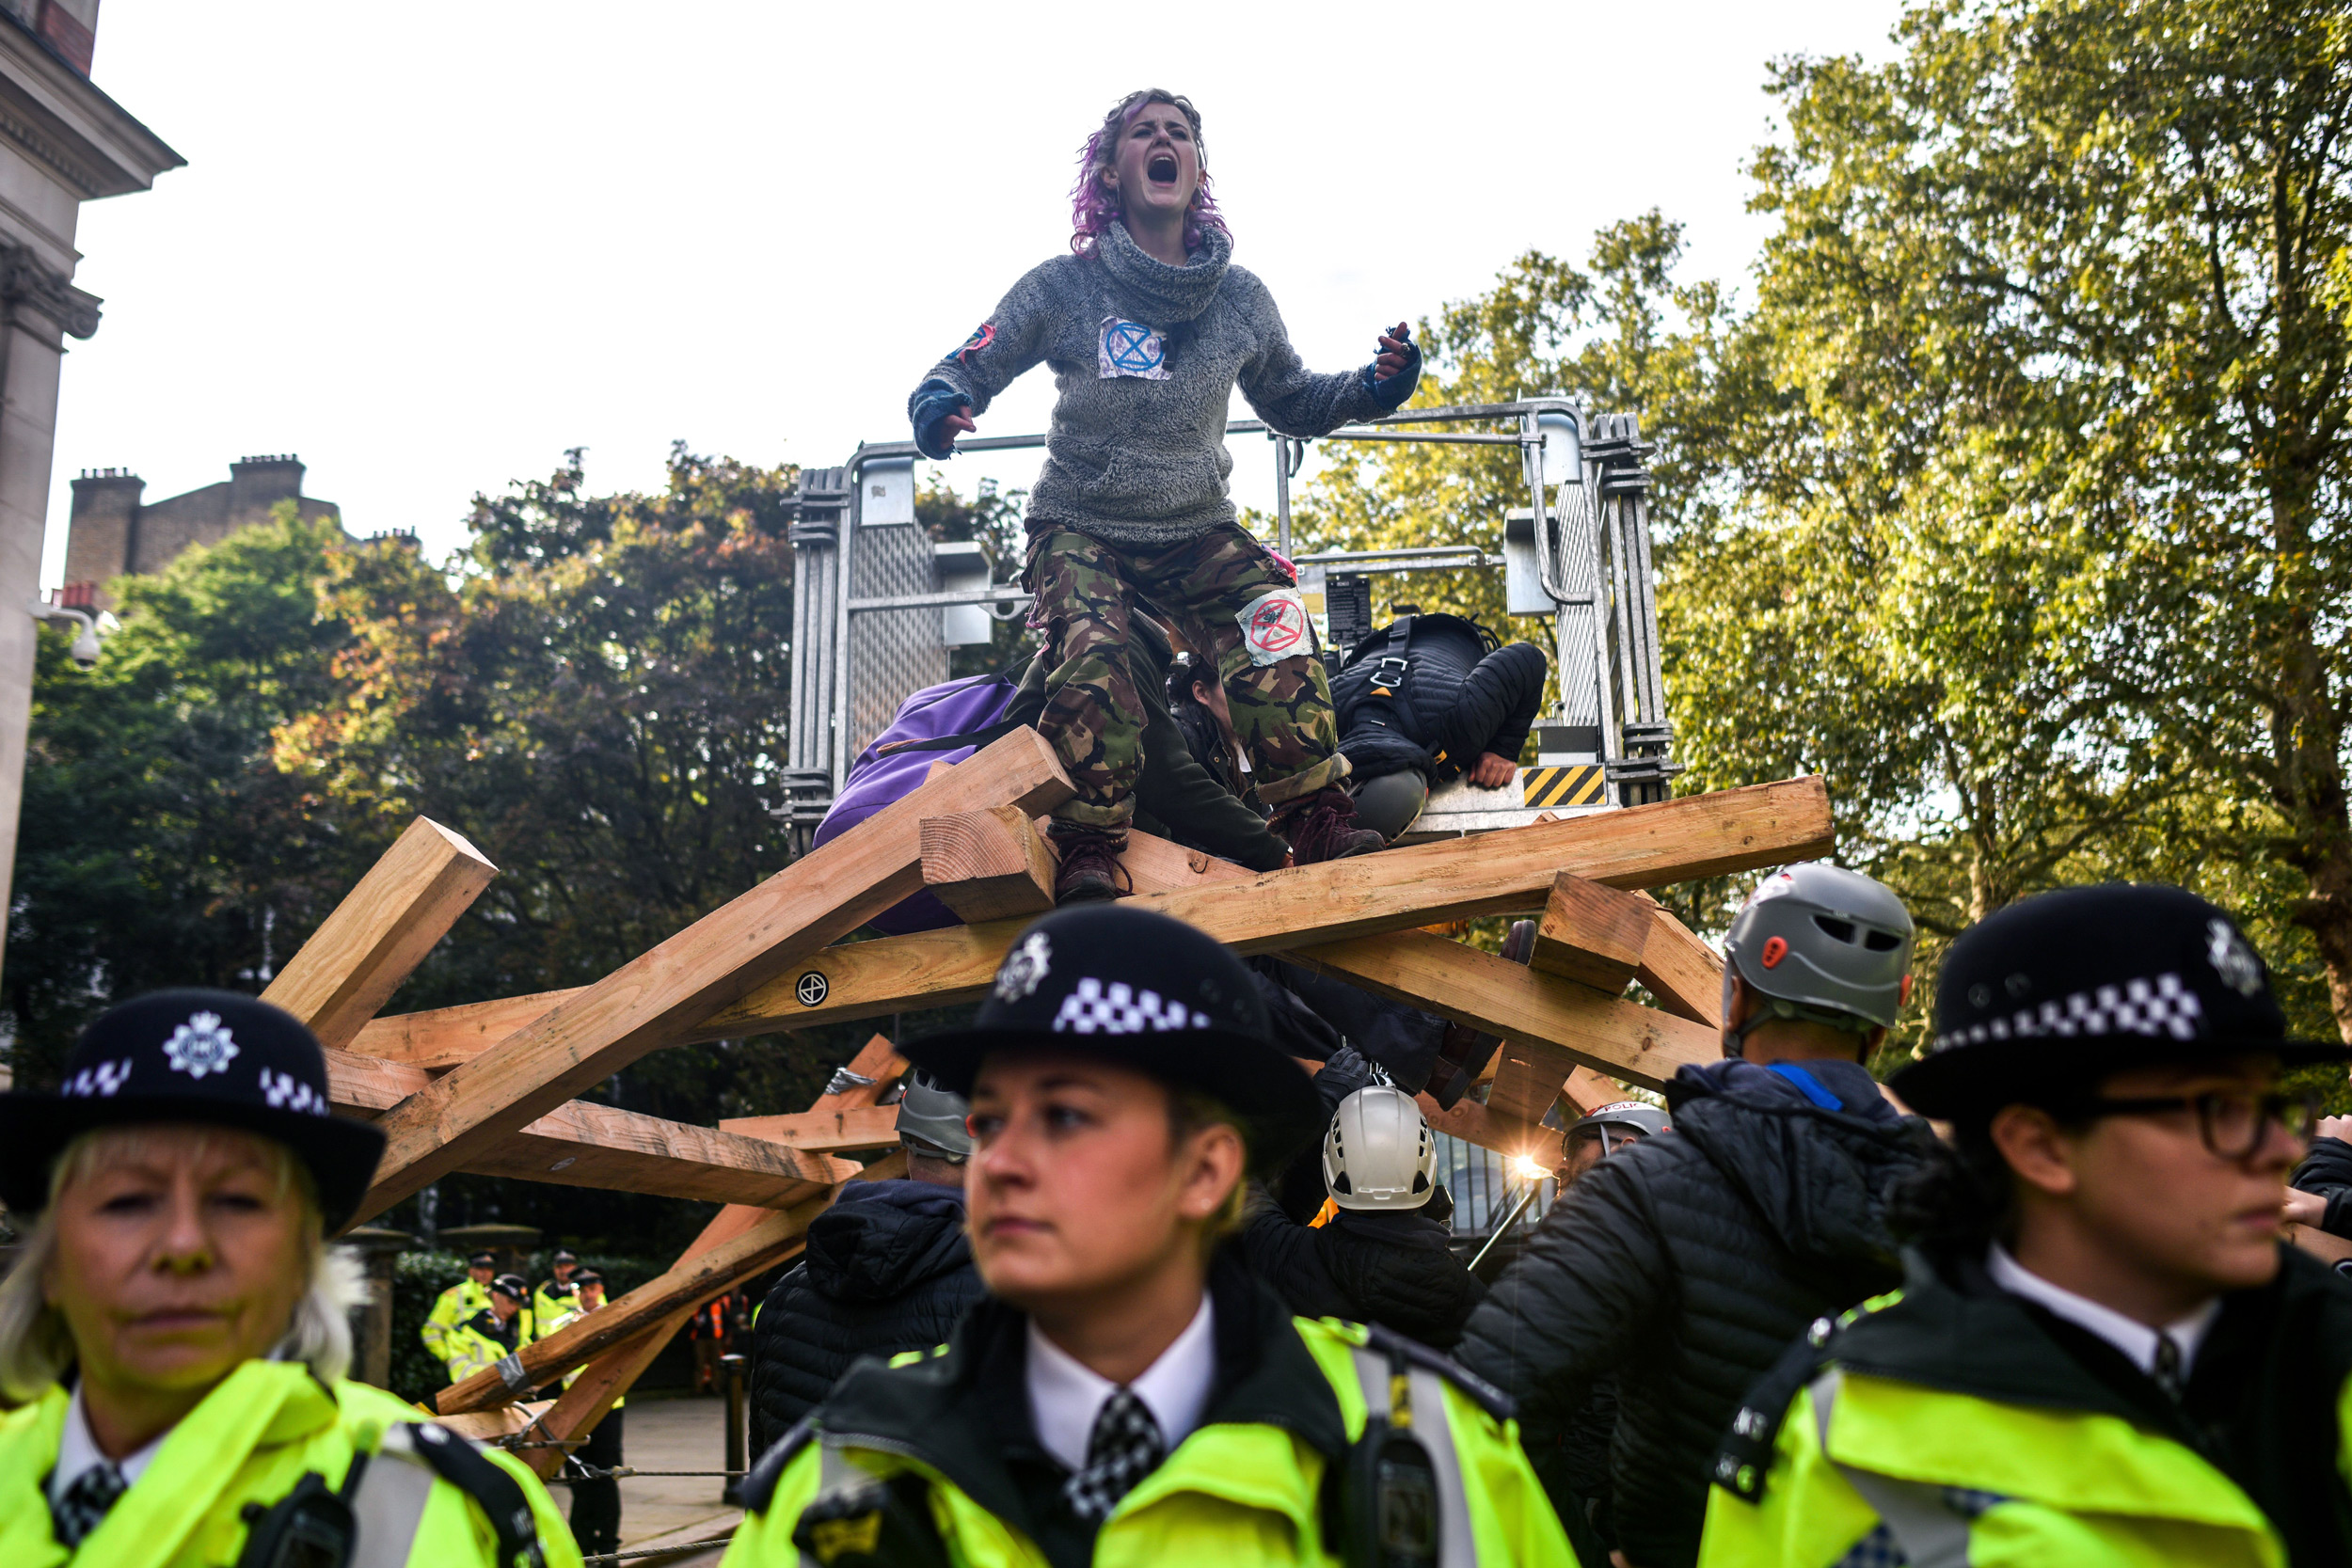 LONDON, ENGLAND - OCTOBER 09: Extinction Rebellion activists stand on a wooden platform behind a police line on October 9, 2019 in London, England. Climate change activists are gathering to block access to various government departments as they launch a two week protest in central London. (Photo by Peter Summers/Getty Images)